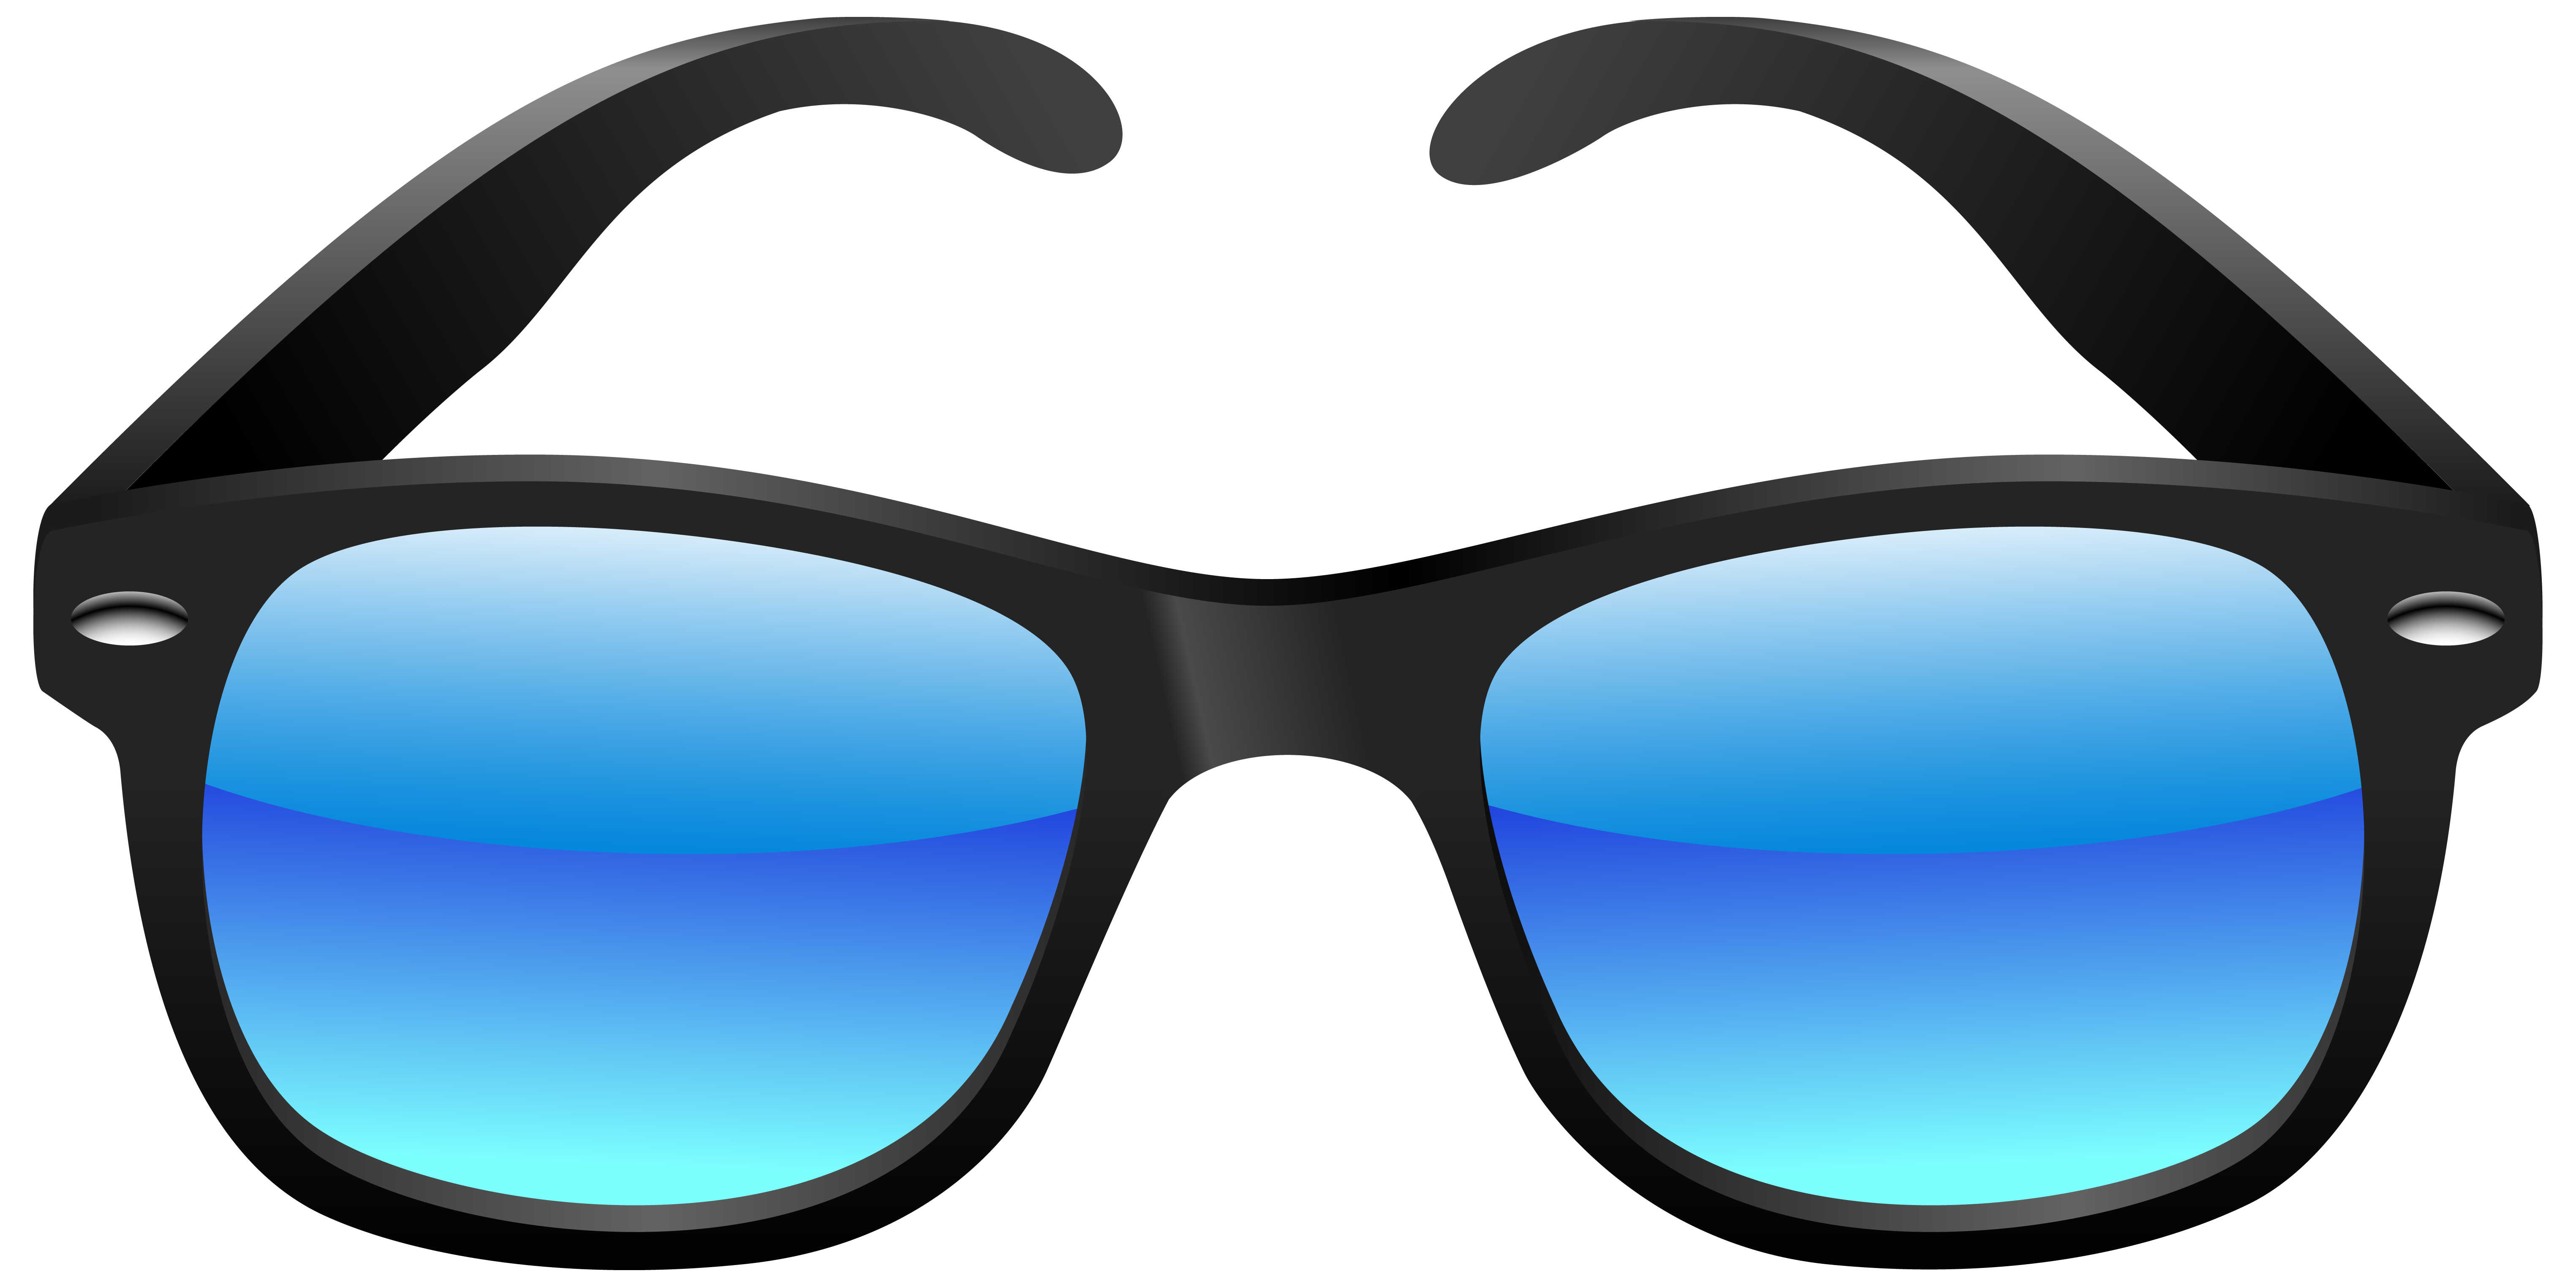 Sunglassrs clipart picture free stock Pinterest picture free stock